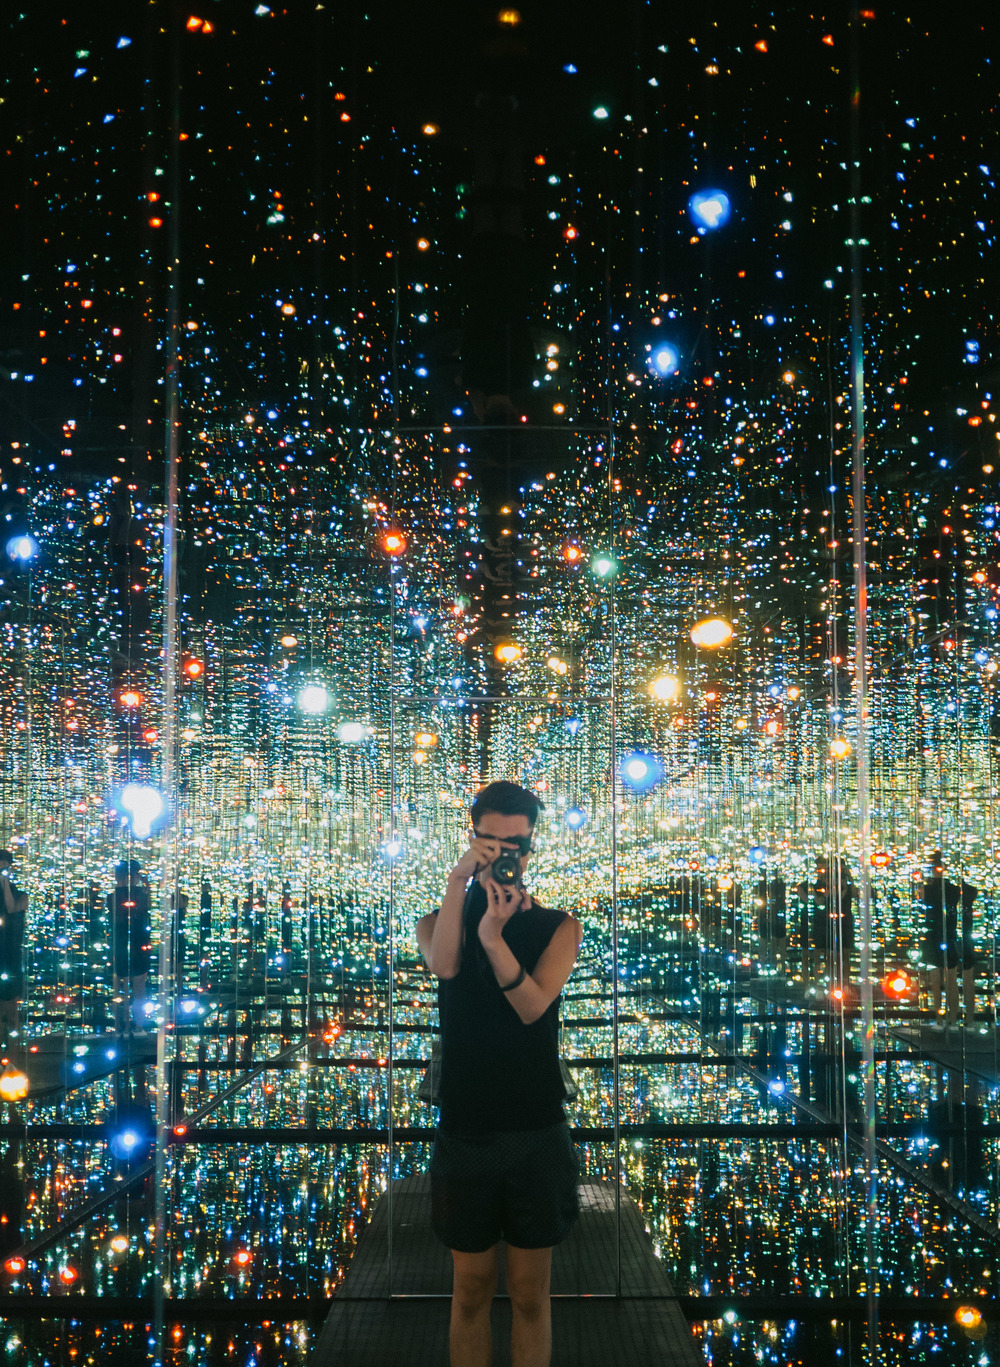 the-broad-museum-yayoi-kusama-infinity-room-los-angeles-3.jpg